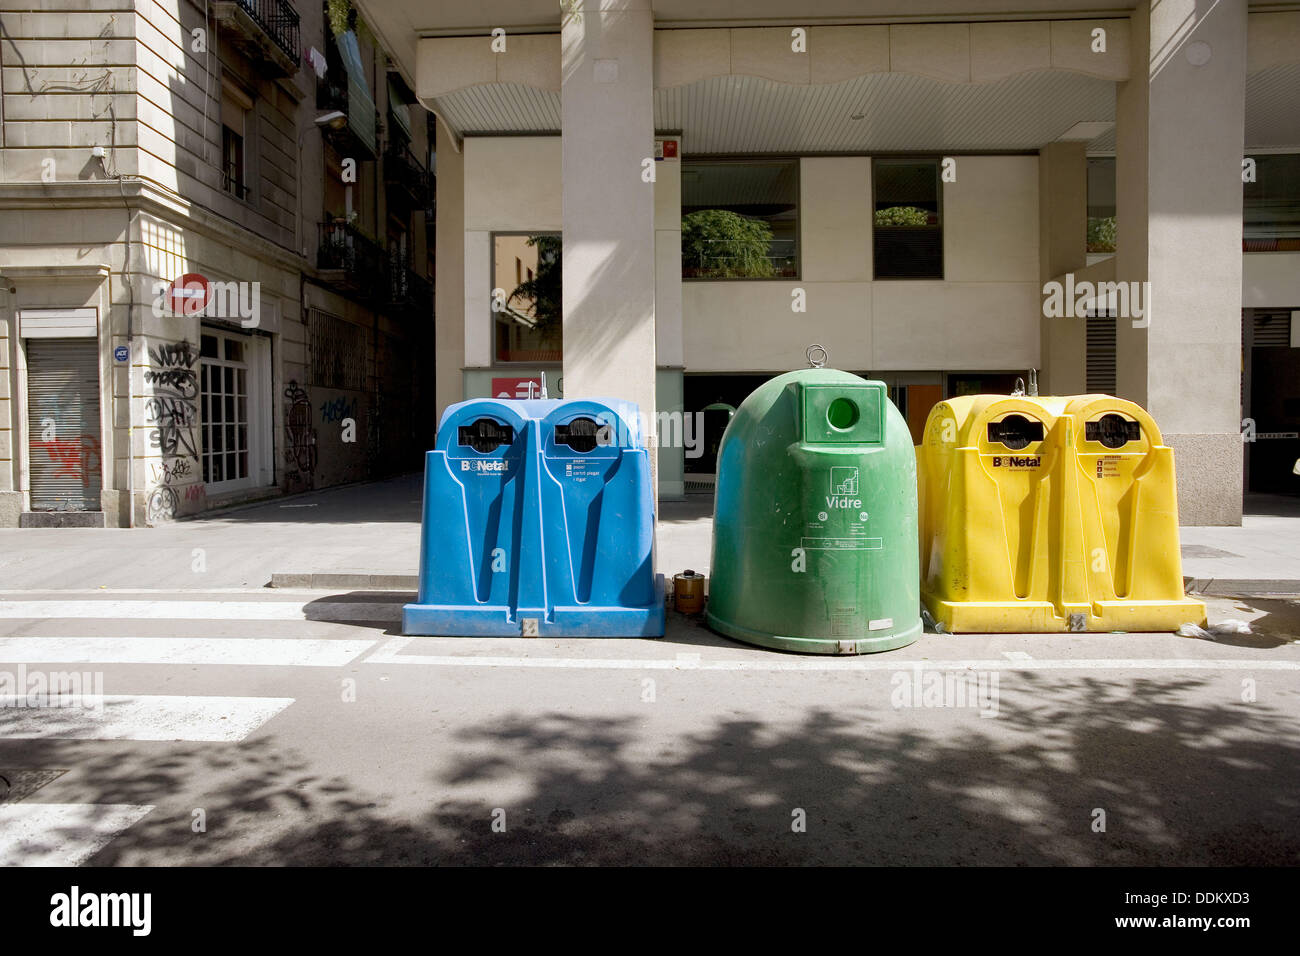 Containers for the reciclying of paper, plastic and glass. Barcelona. Spain. - Stock Image